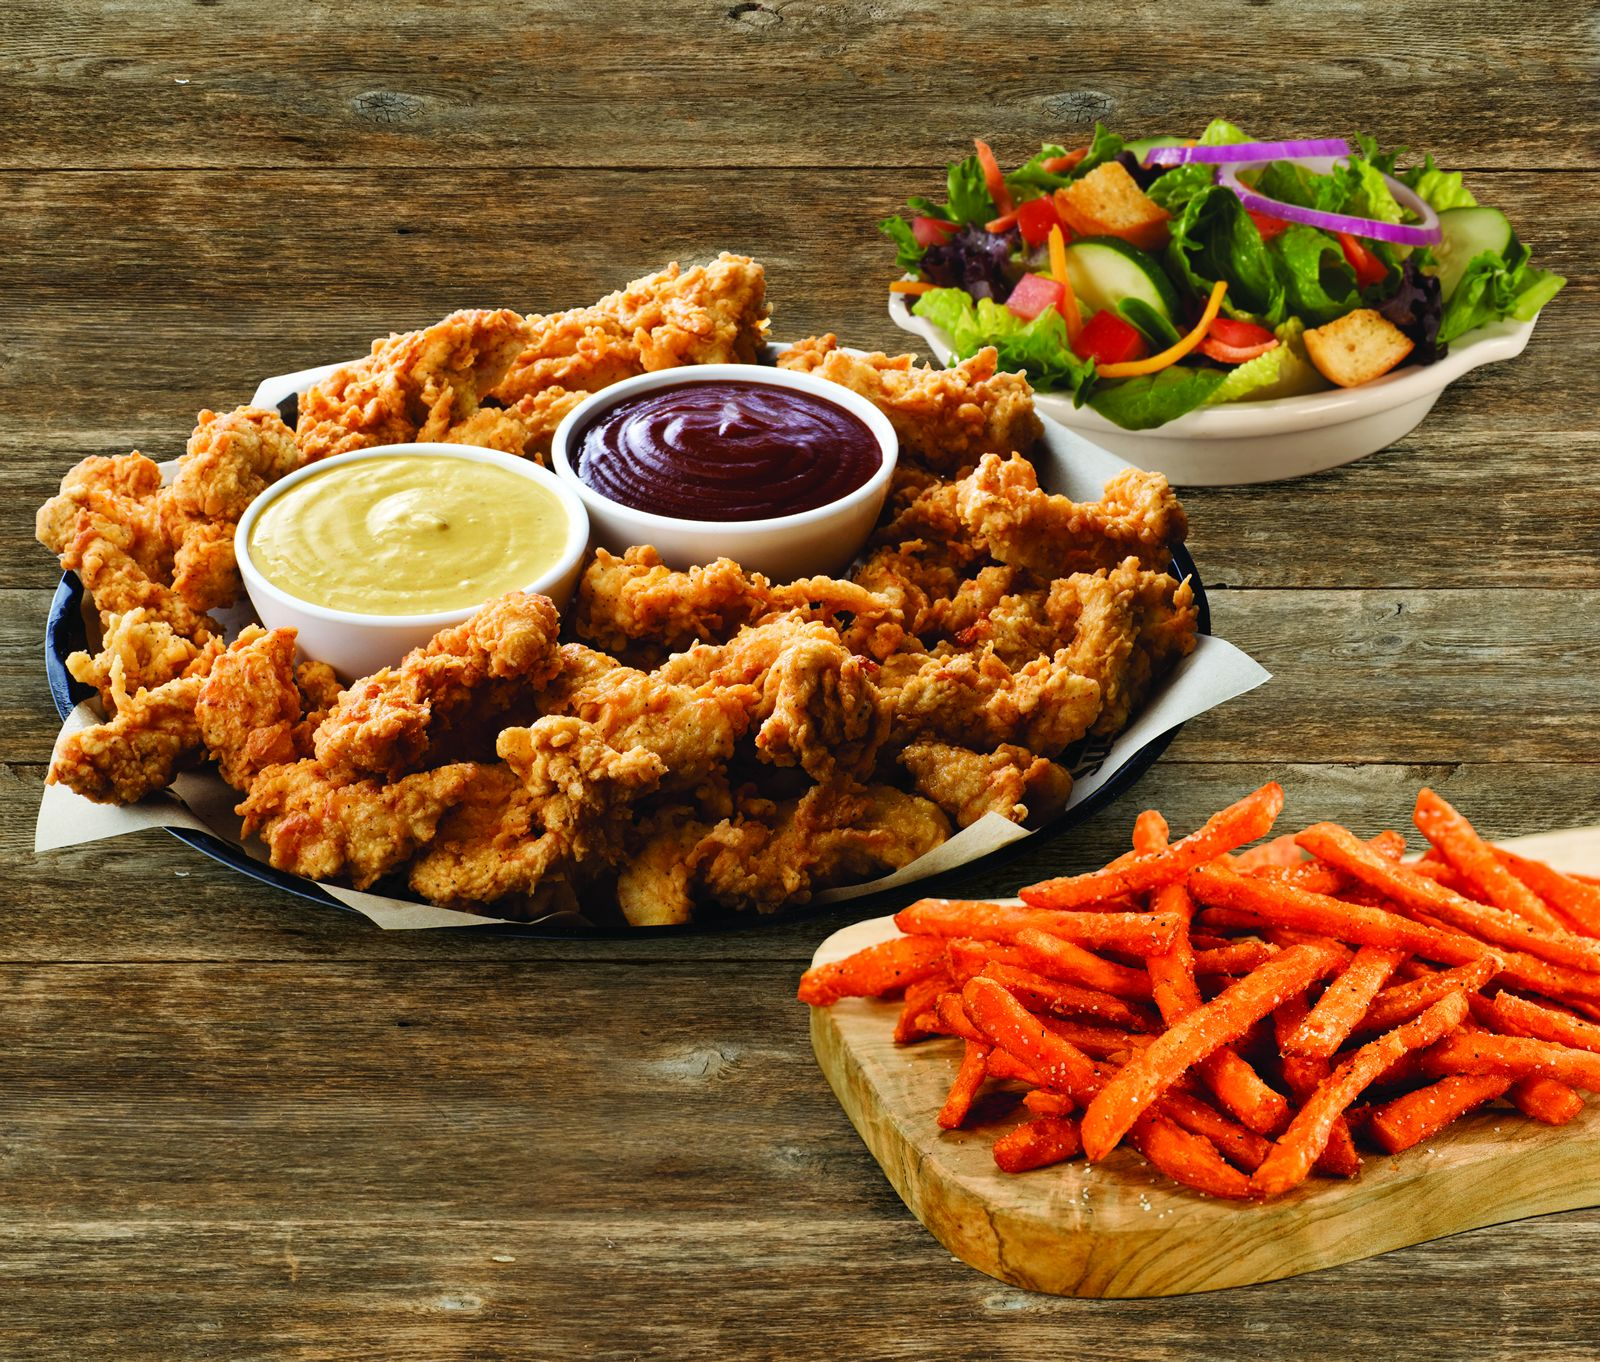 Logan's Roadhouse Launches New To-Go and Delivery Options